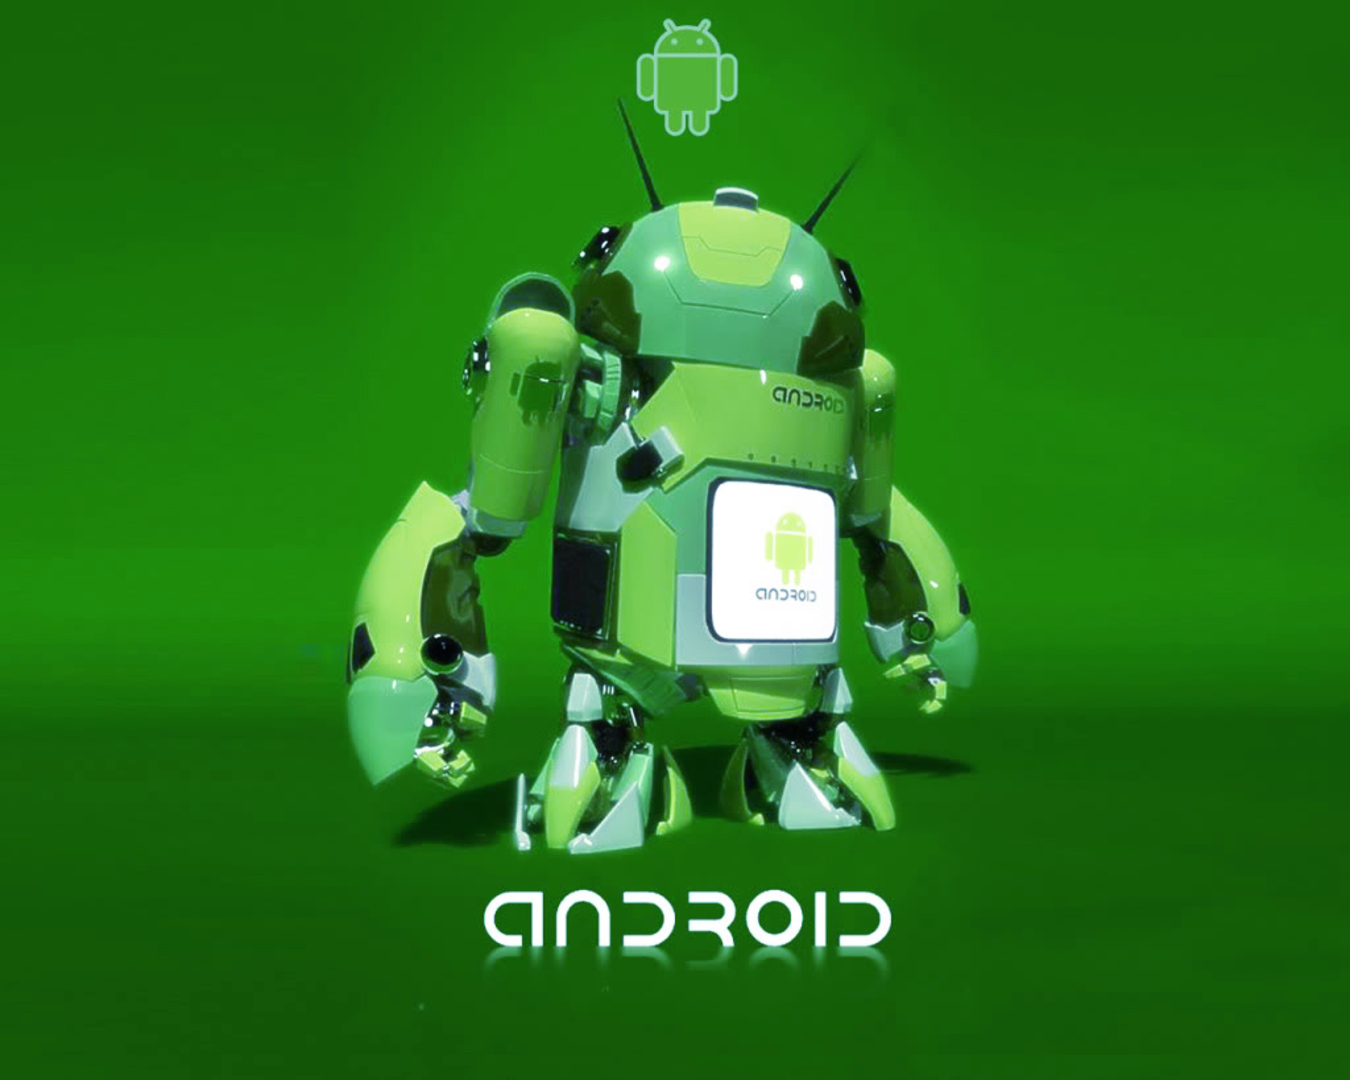 Iphone 5 wallpapers 0232 7995 the wondrous pics -  10 Robo Android Smartphone Wallpaper Download Wallpapers Page